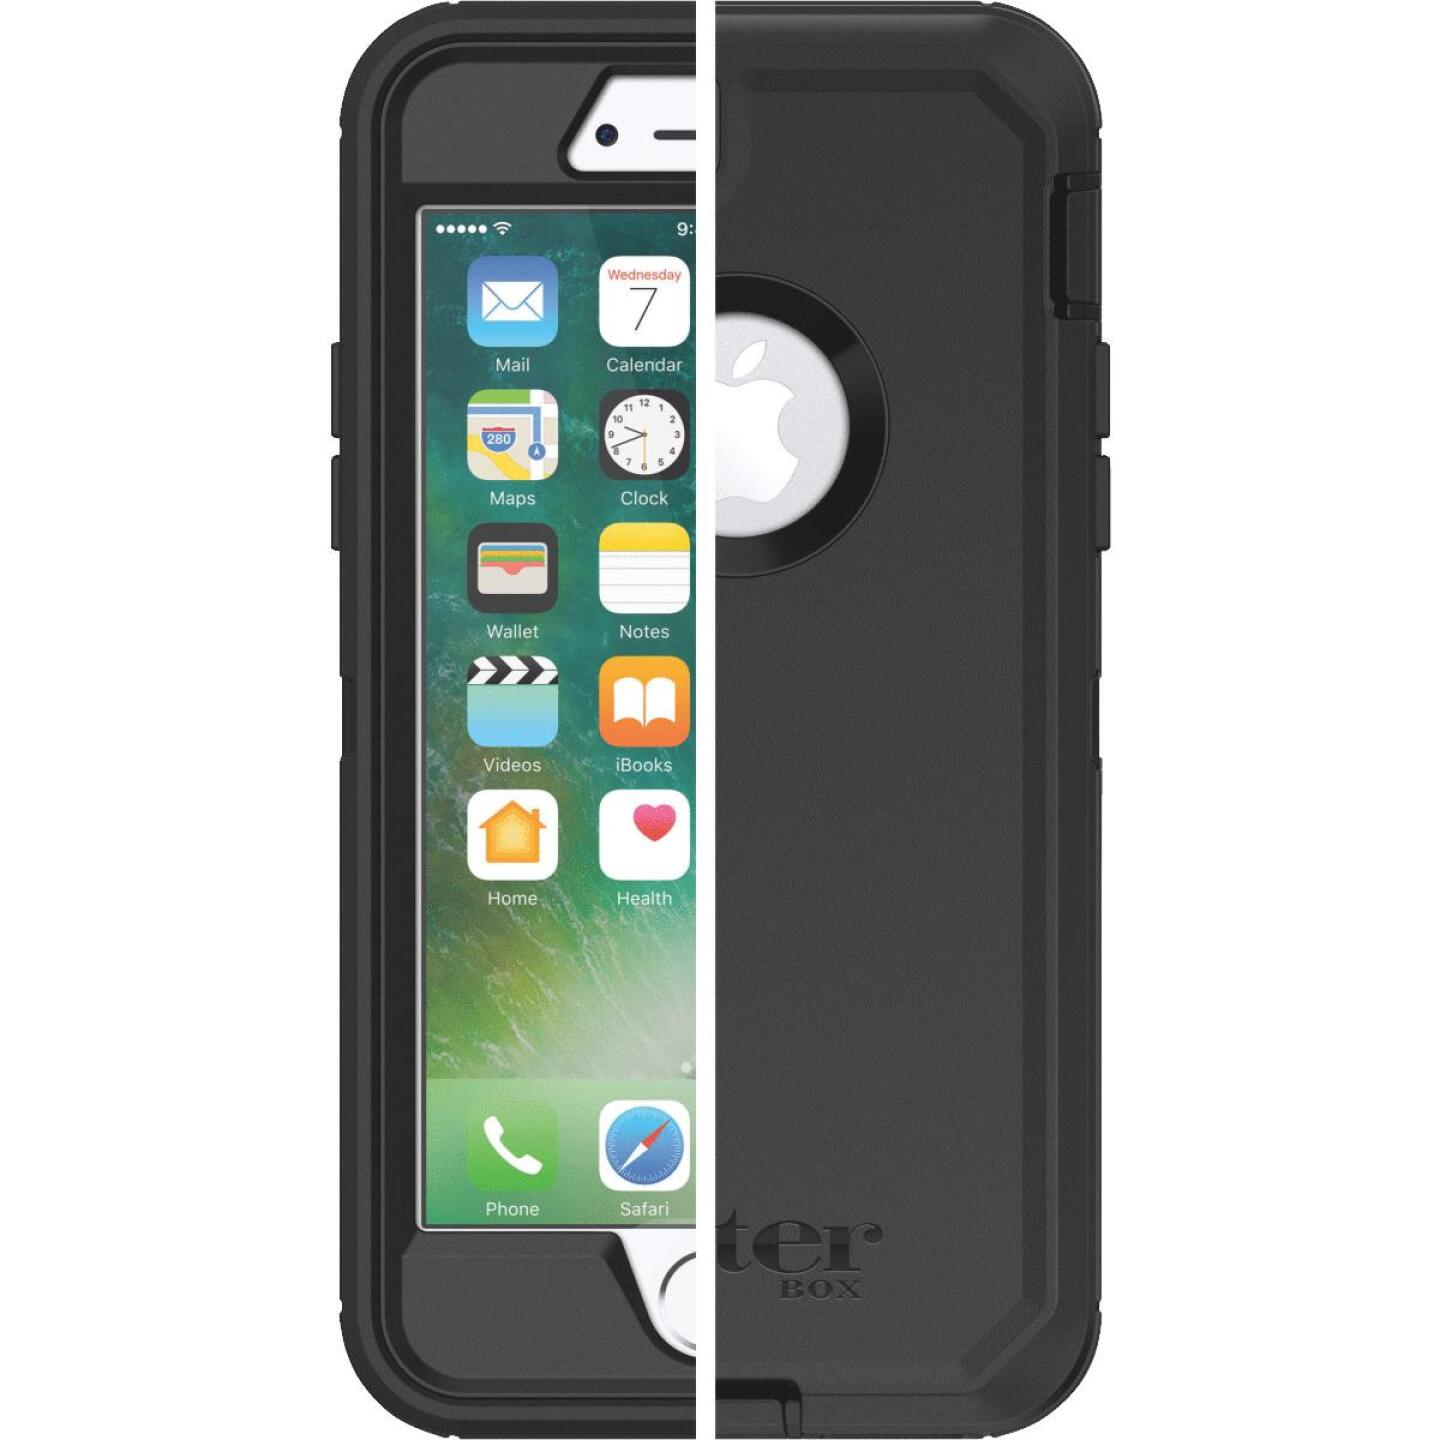 Otterbox Defender Series iPhone 7 Black Cell Phone Case Image 1